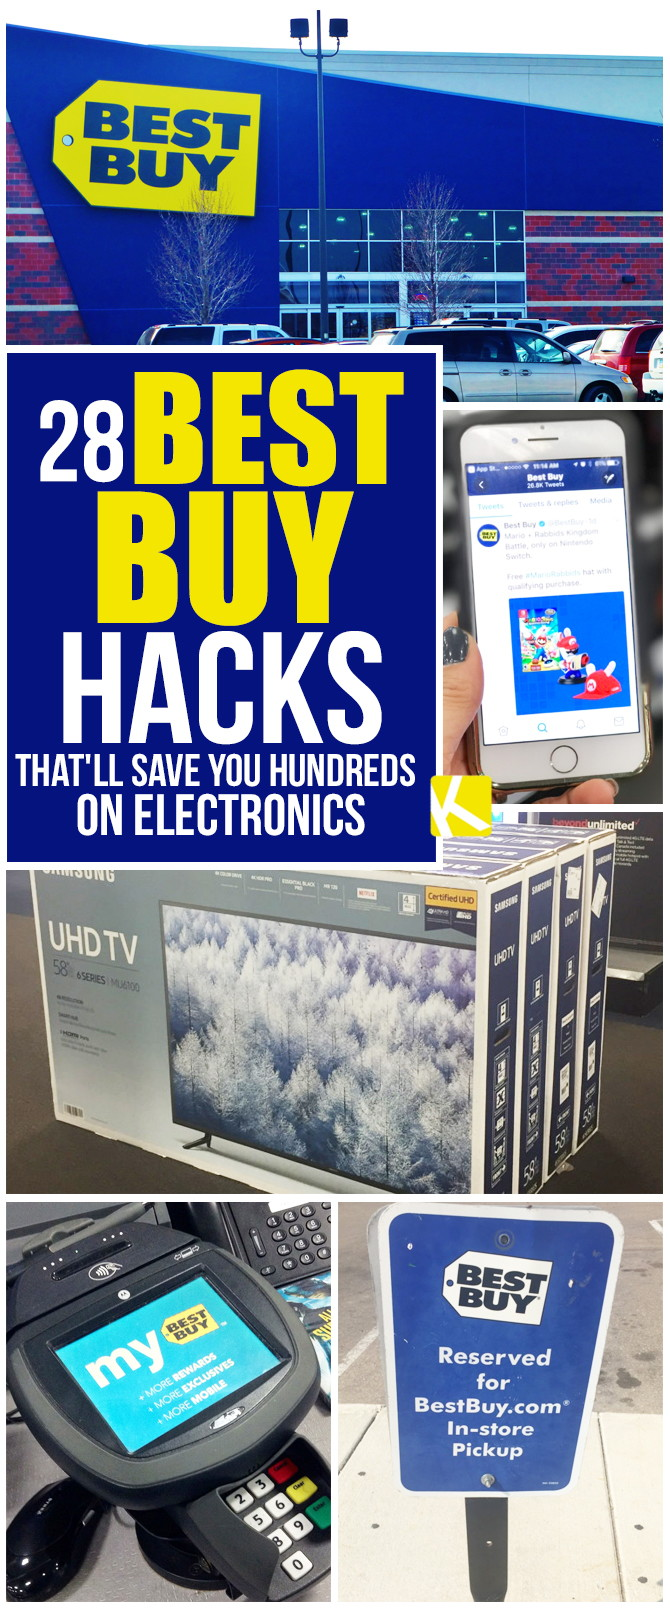 6a9c0627e7 28 Best Buy Hacks That ll Save You Hundreds on Electronics - The ...